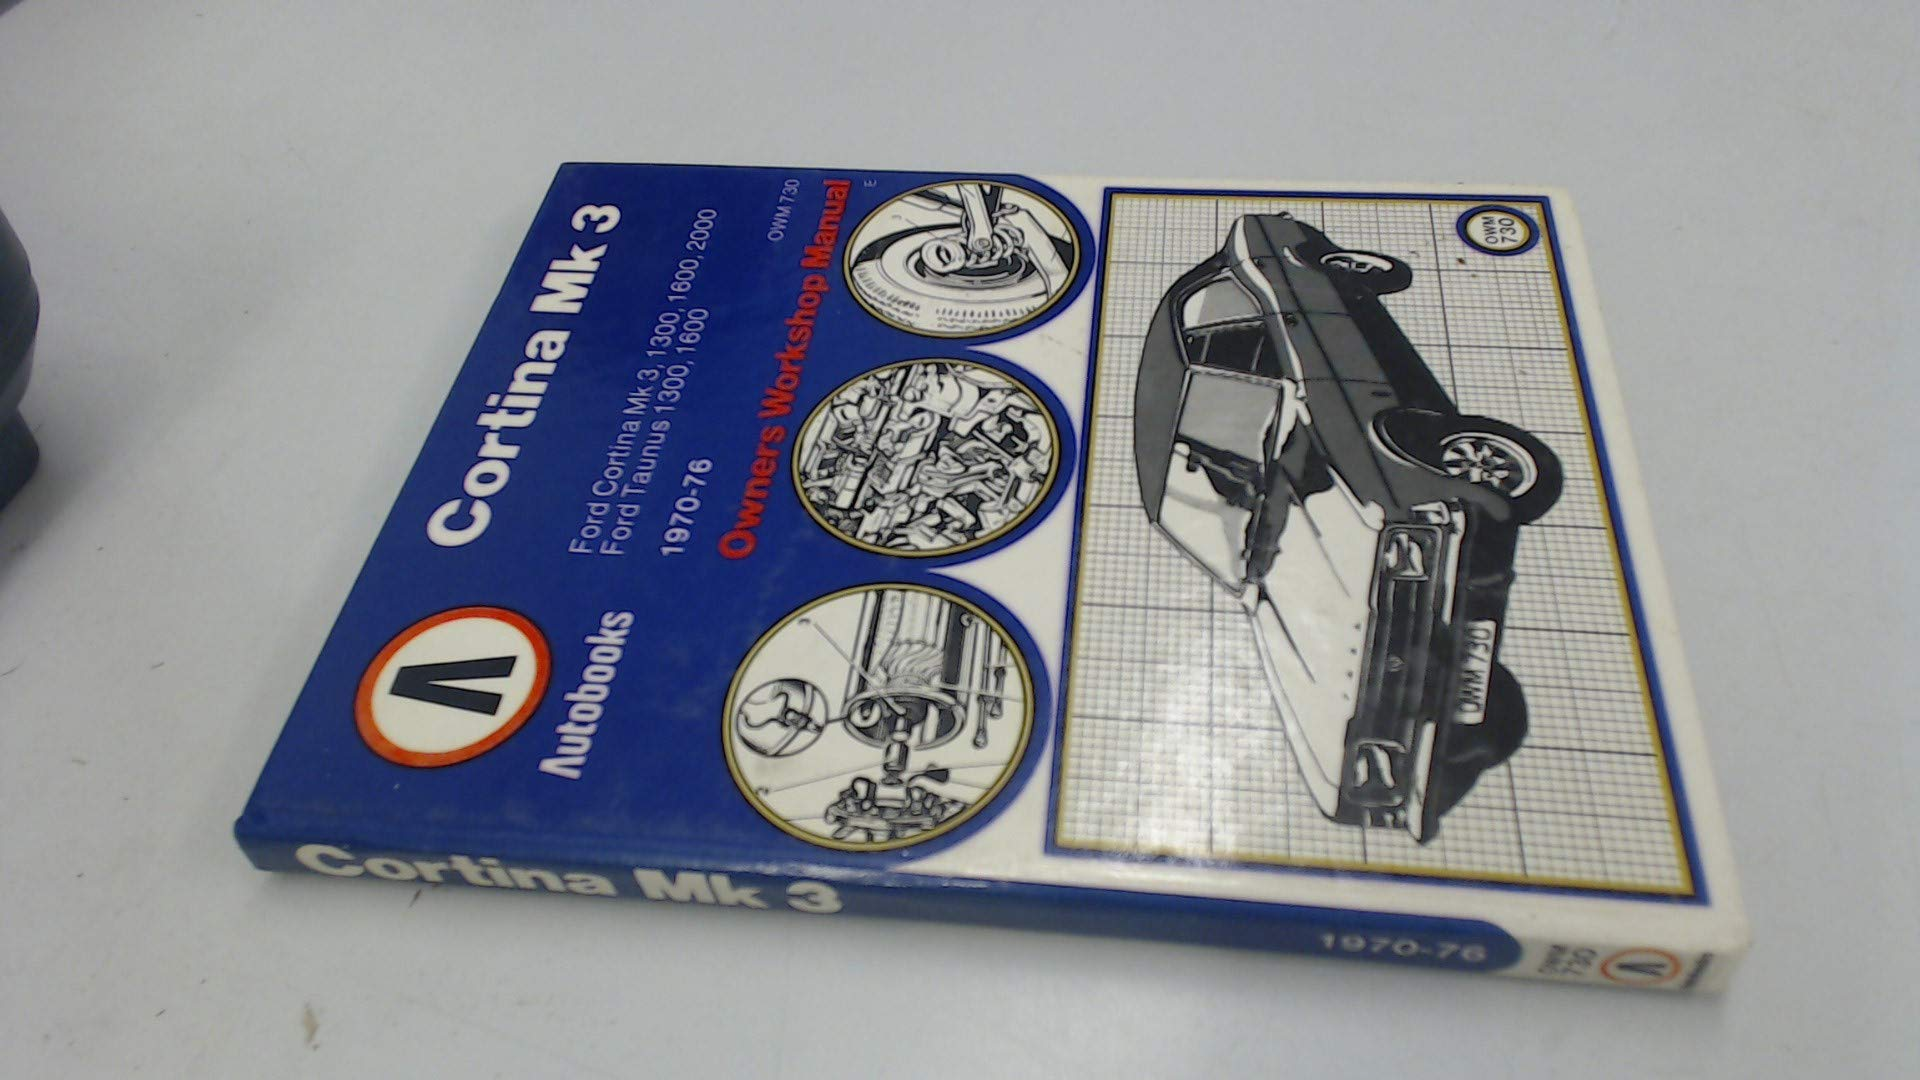 Ford Cortina Mk 3, 170-1976 Autobook, Owners Workshop Manual Hardcover – Import, 1982